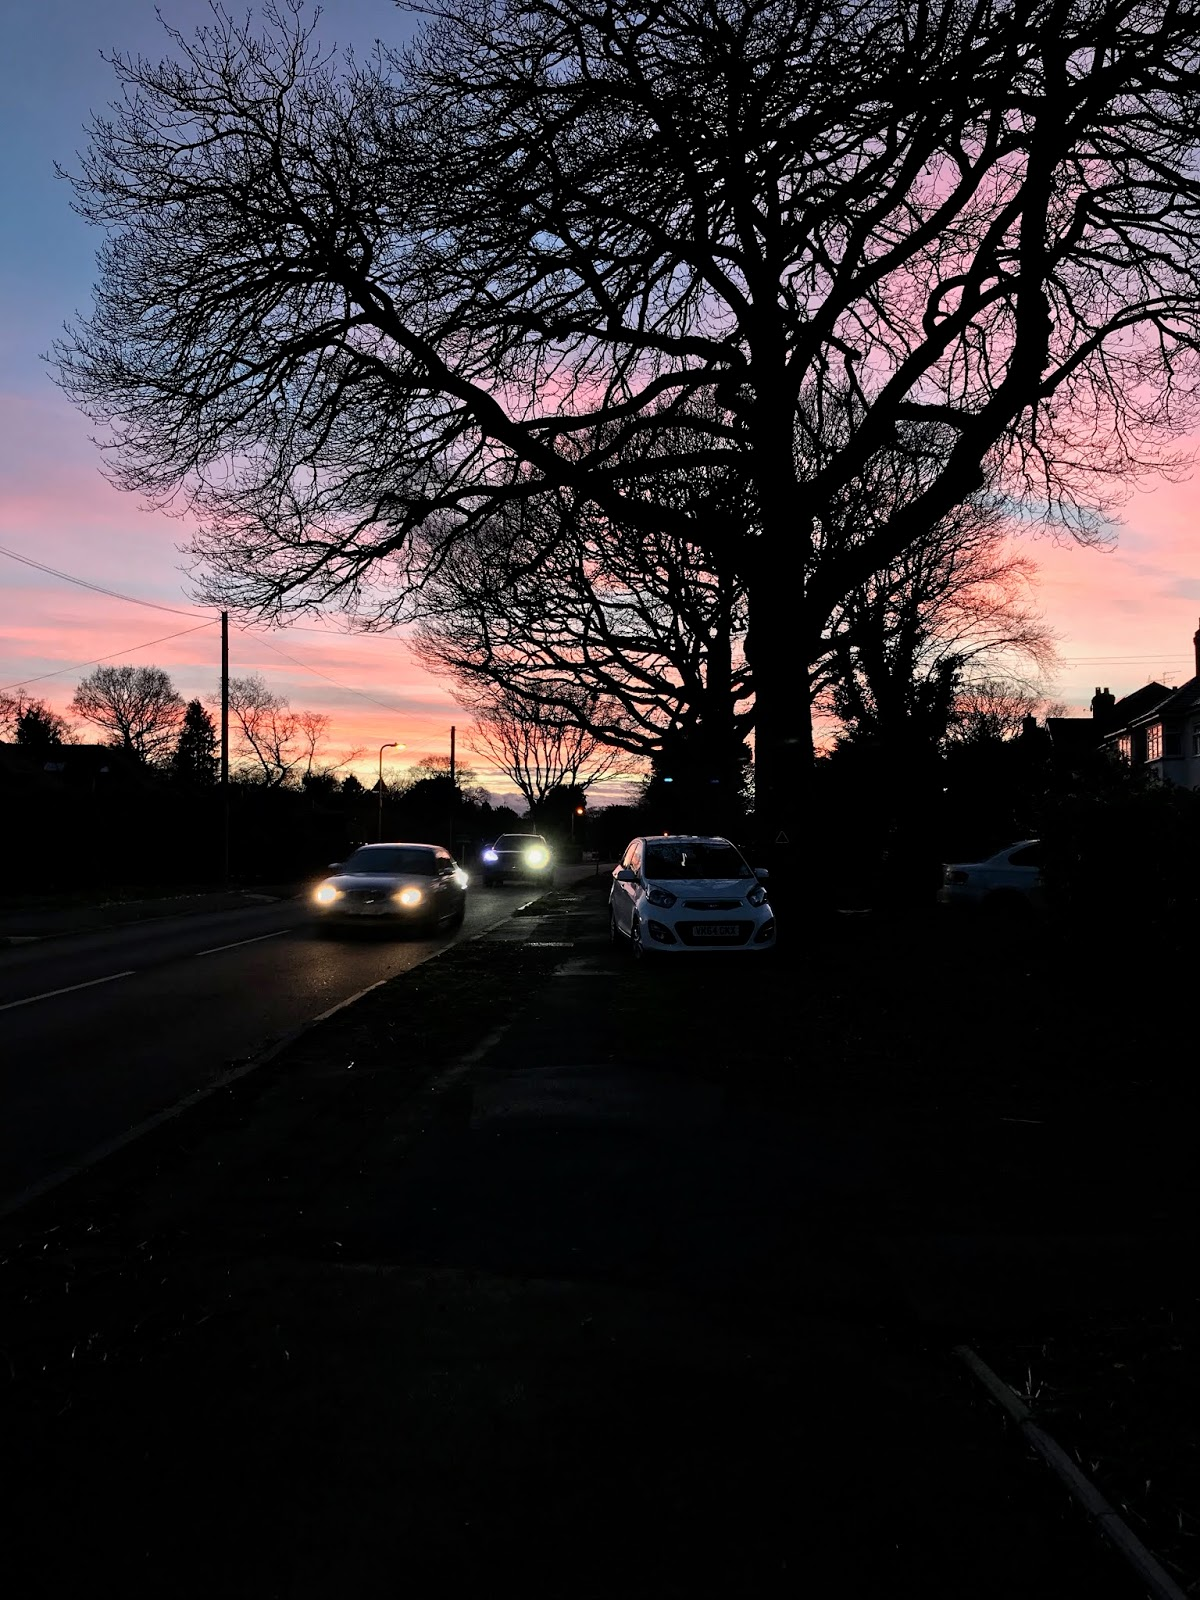 Sunset on Station Road